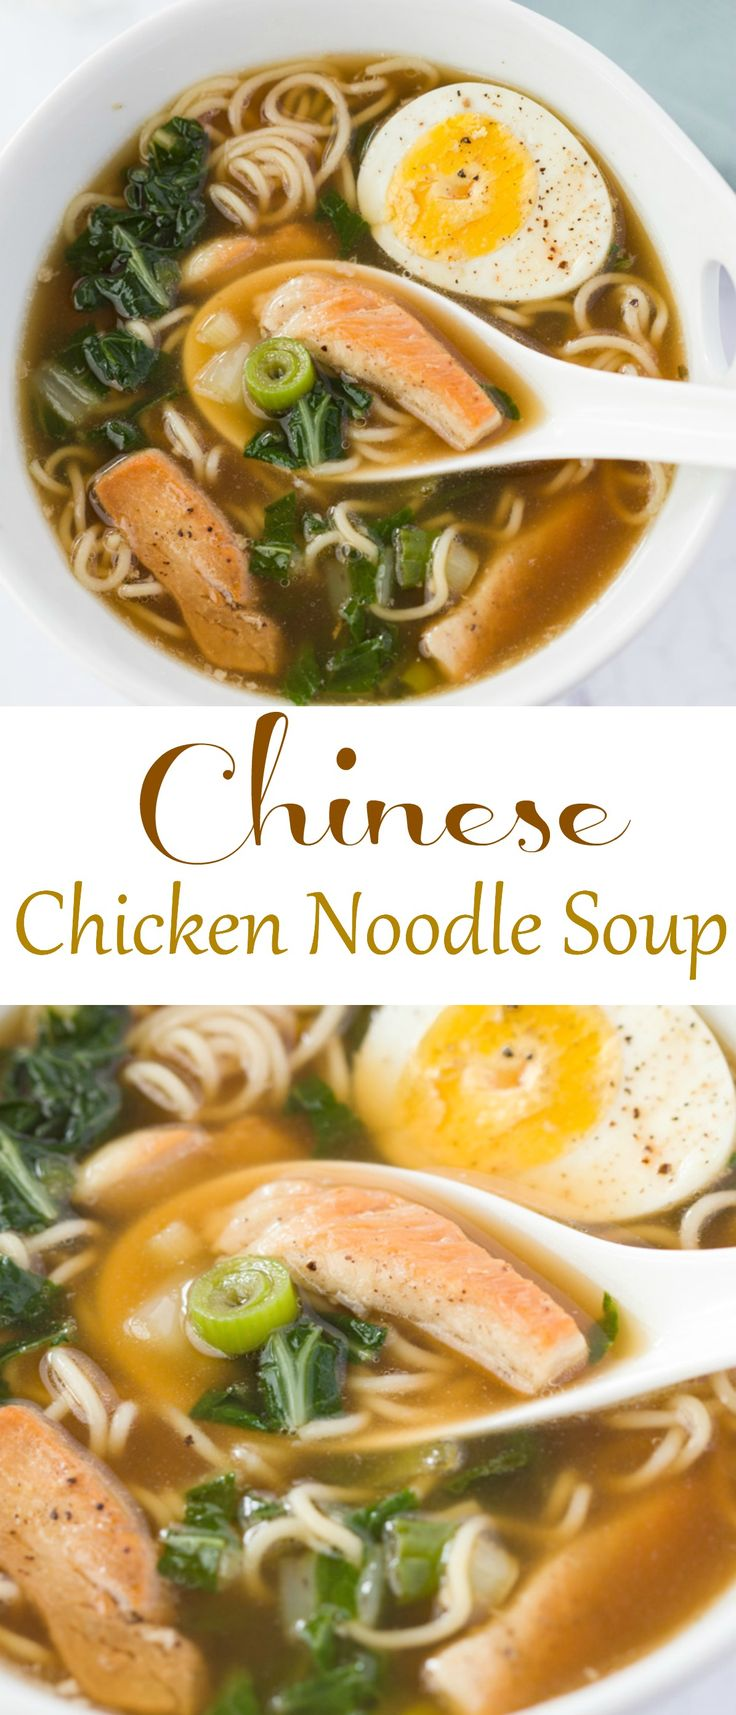 This healthy, protein-packed Chinese Chicken Noodle Soup that will leave you satisfied and energized.